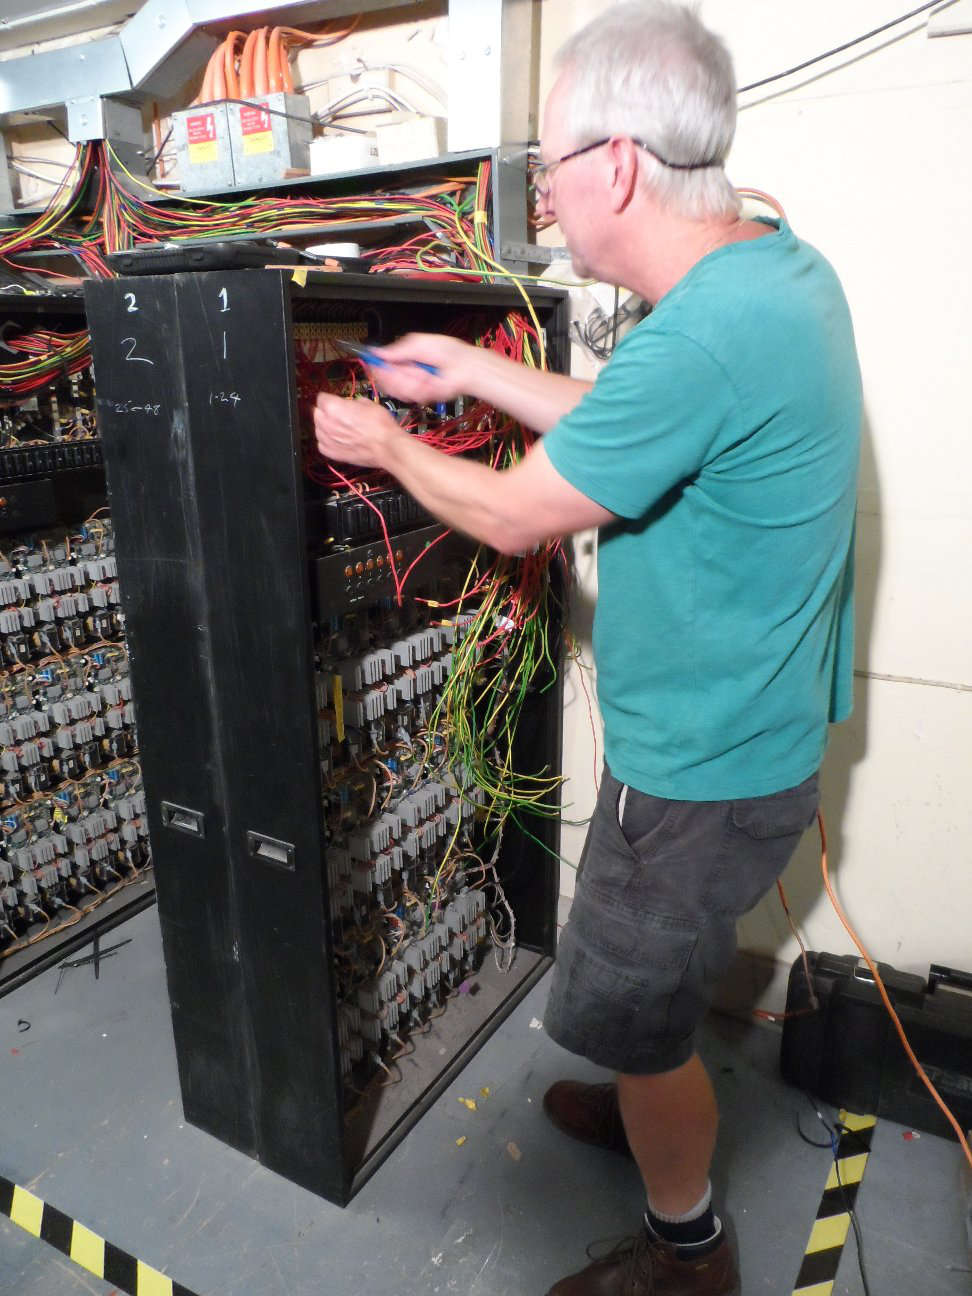 Installing dimmers 2